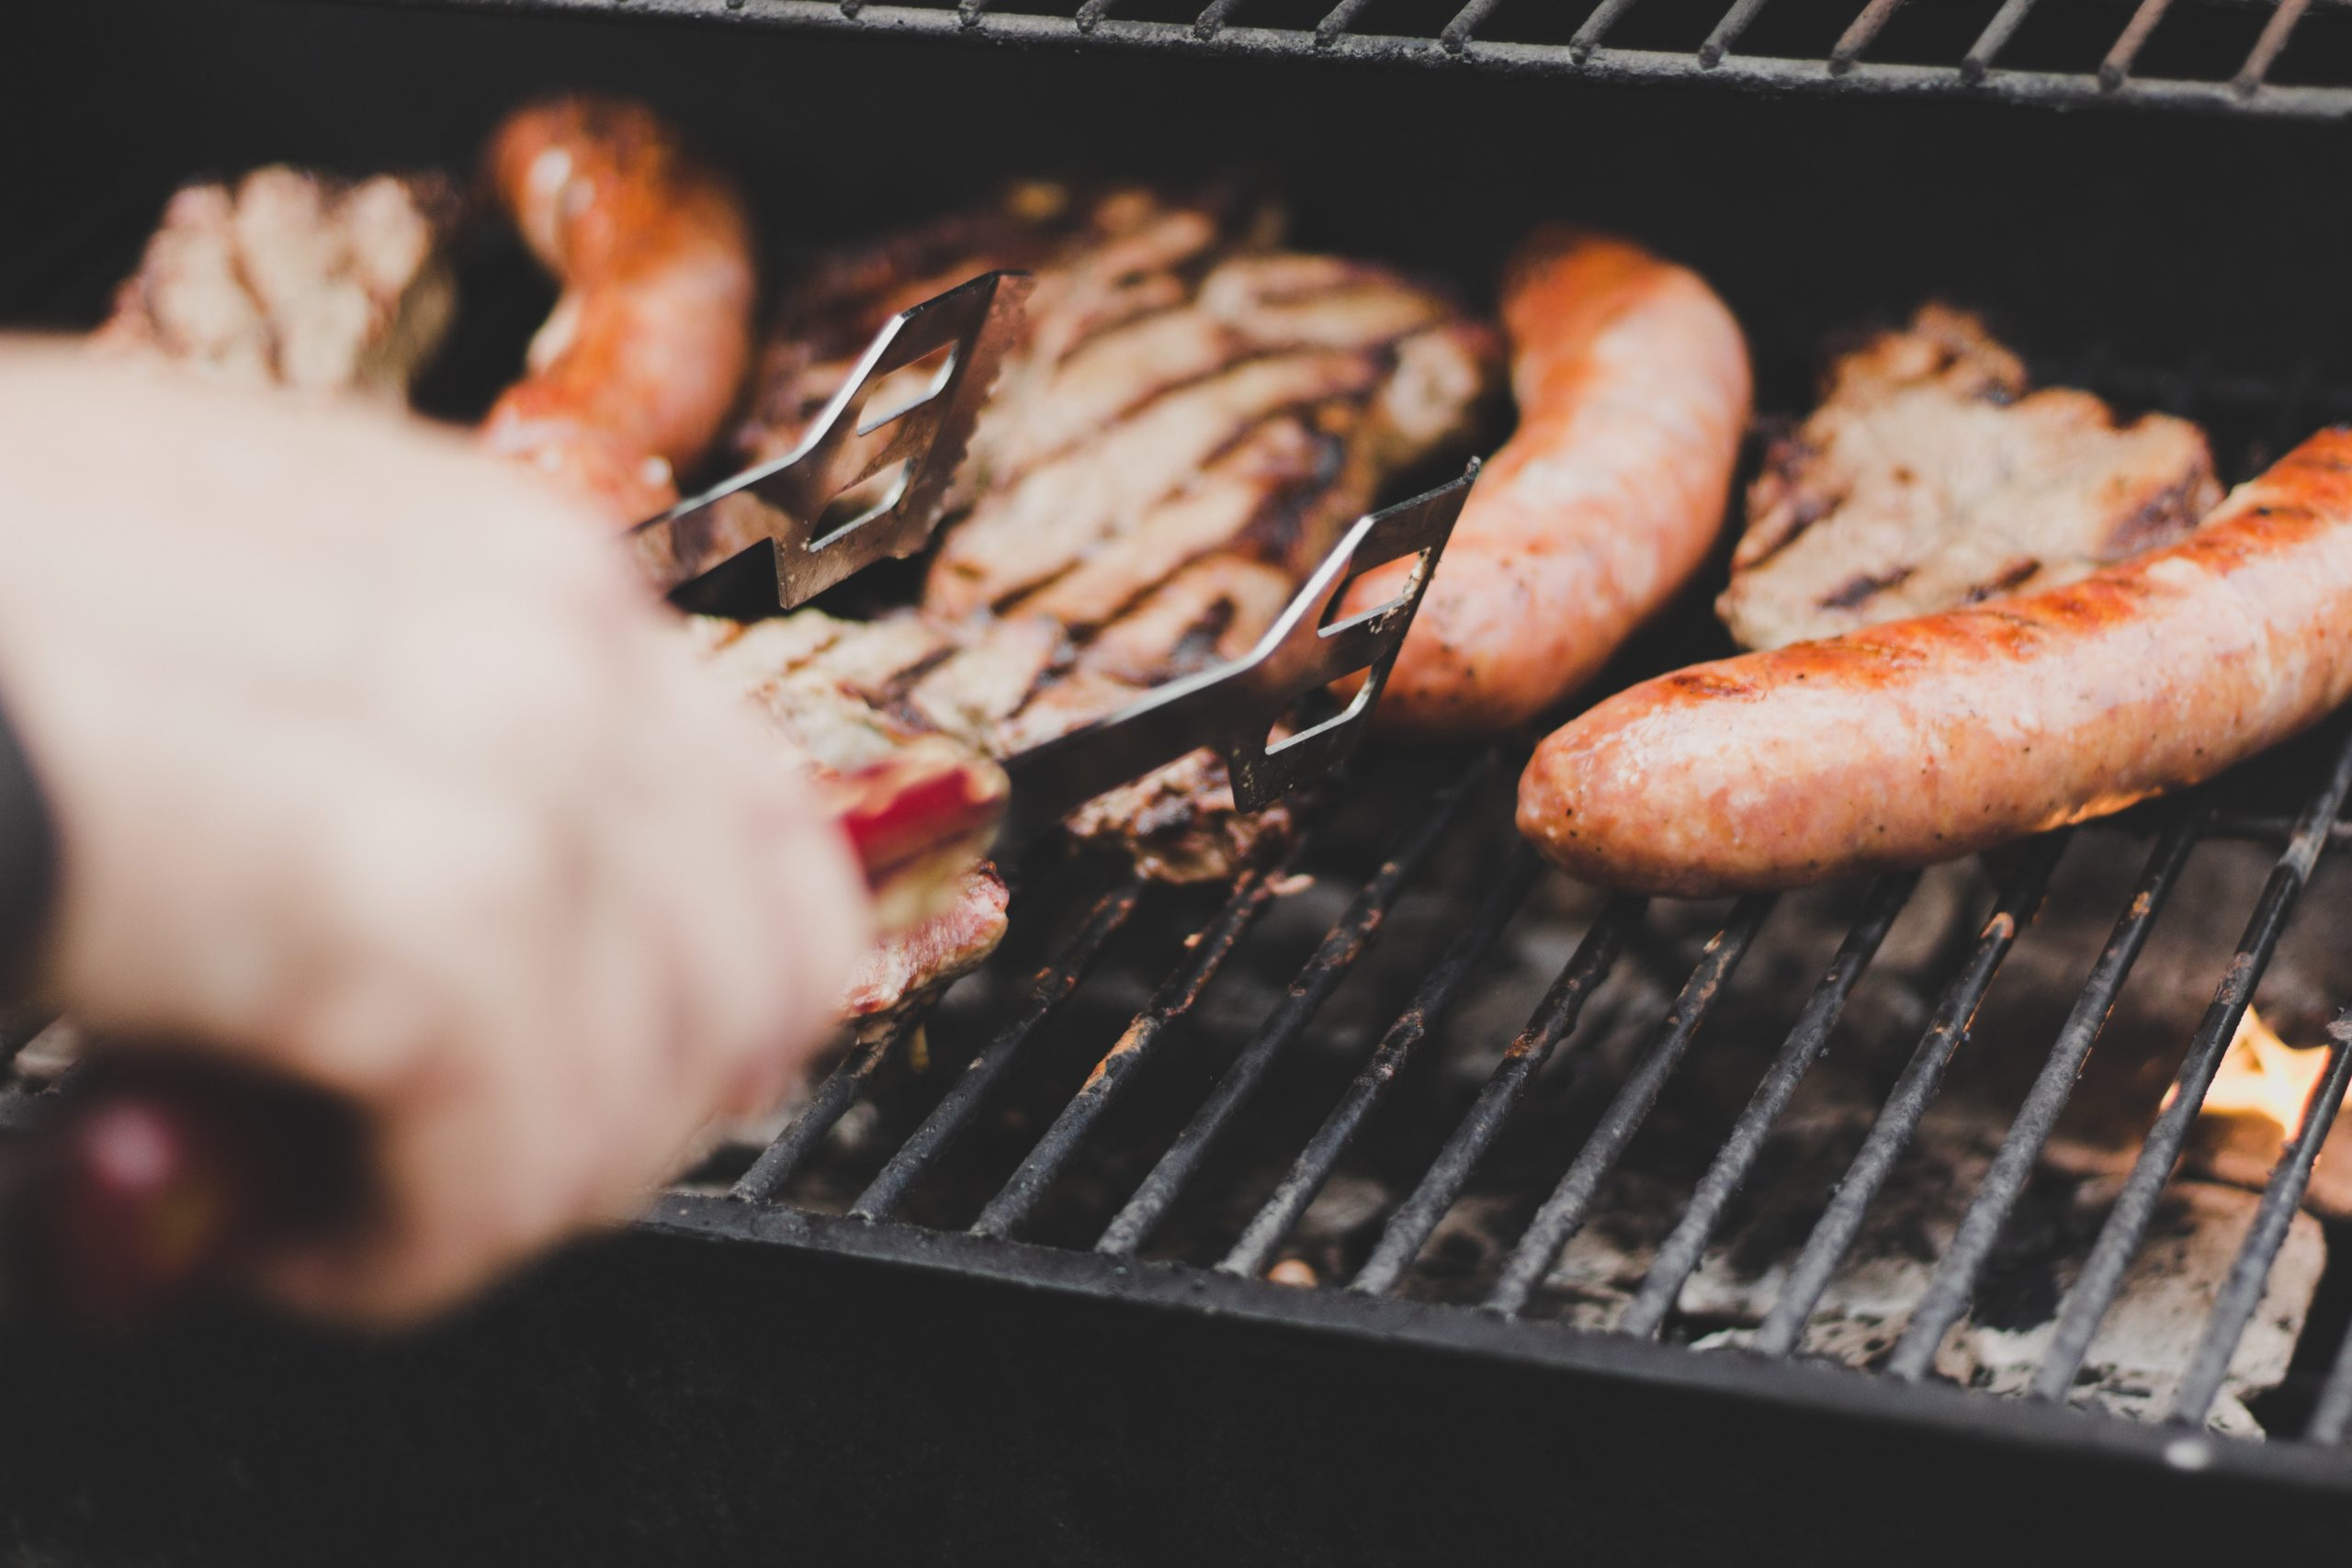 A person grilling sausage and other meat on a grill.